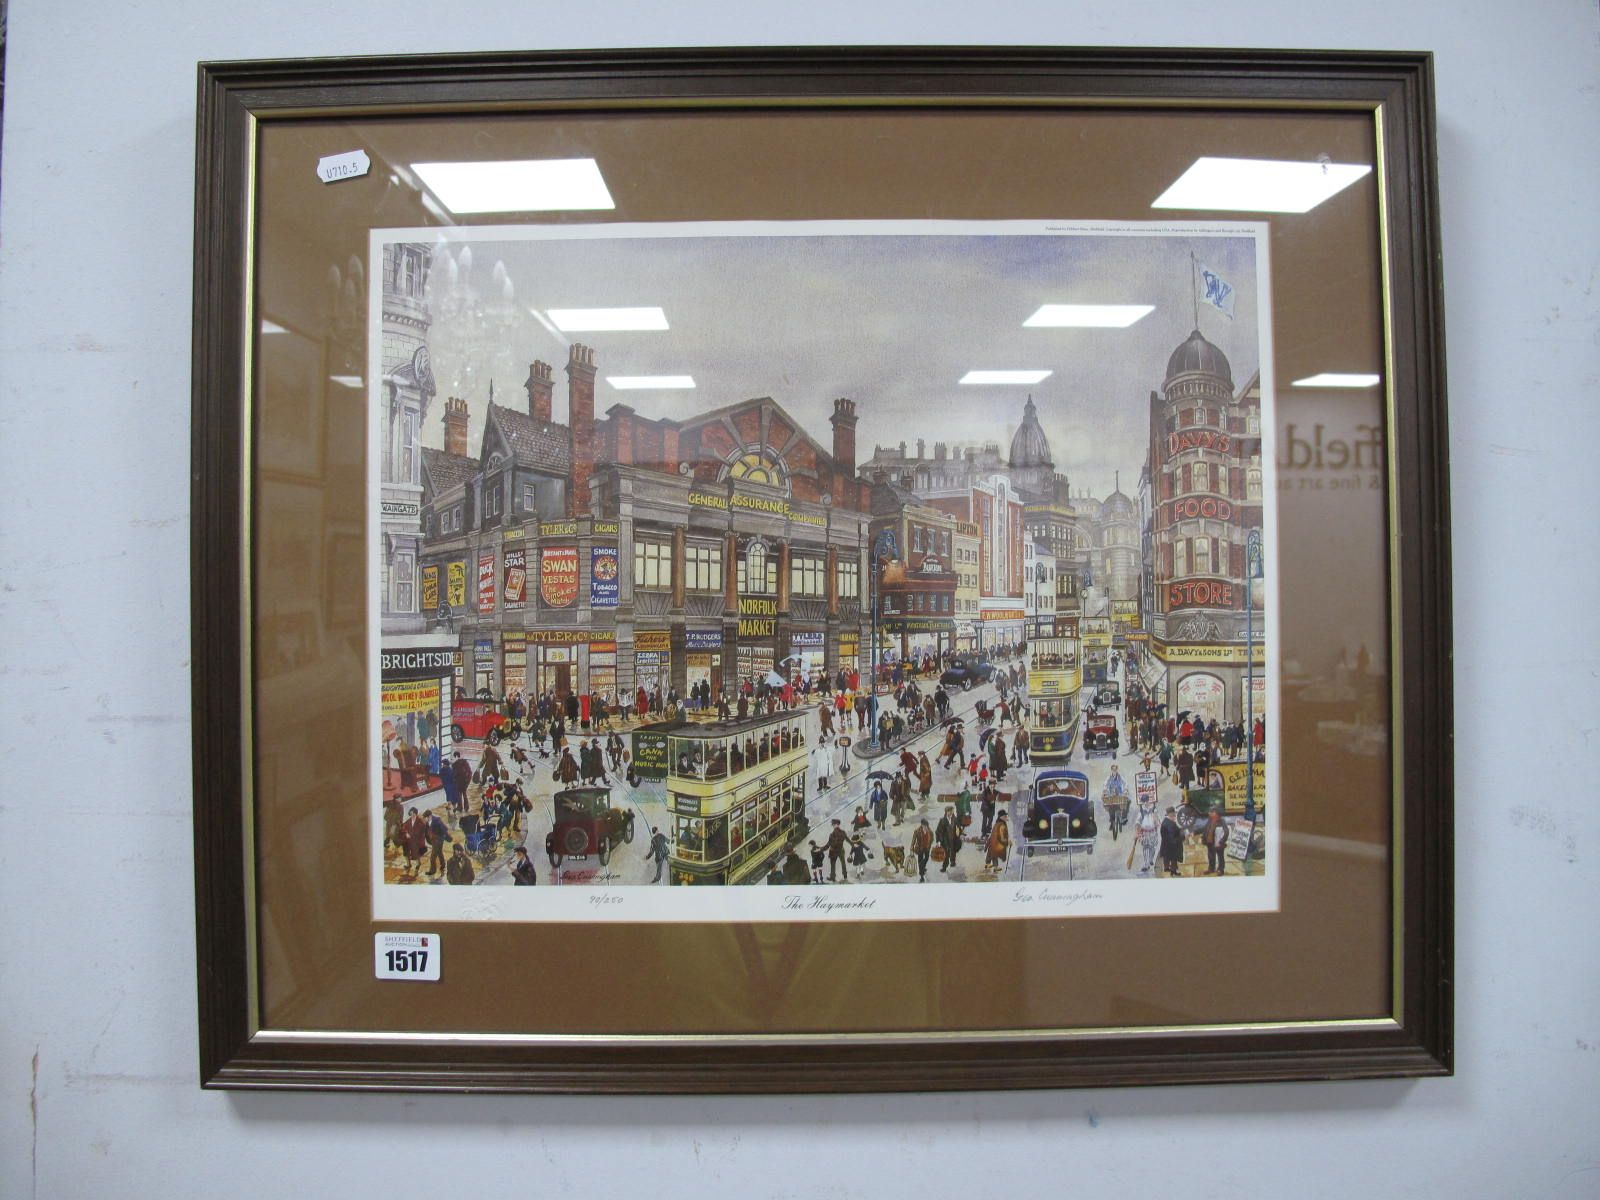 George Cunningham, 'The Haymarket', limited edition print 90/250, signed lower right, 33 x 43cm.